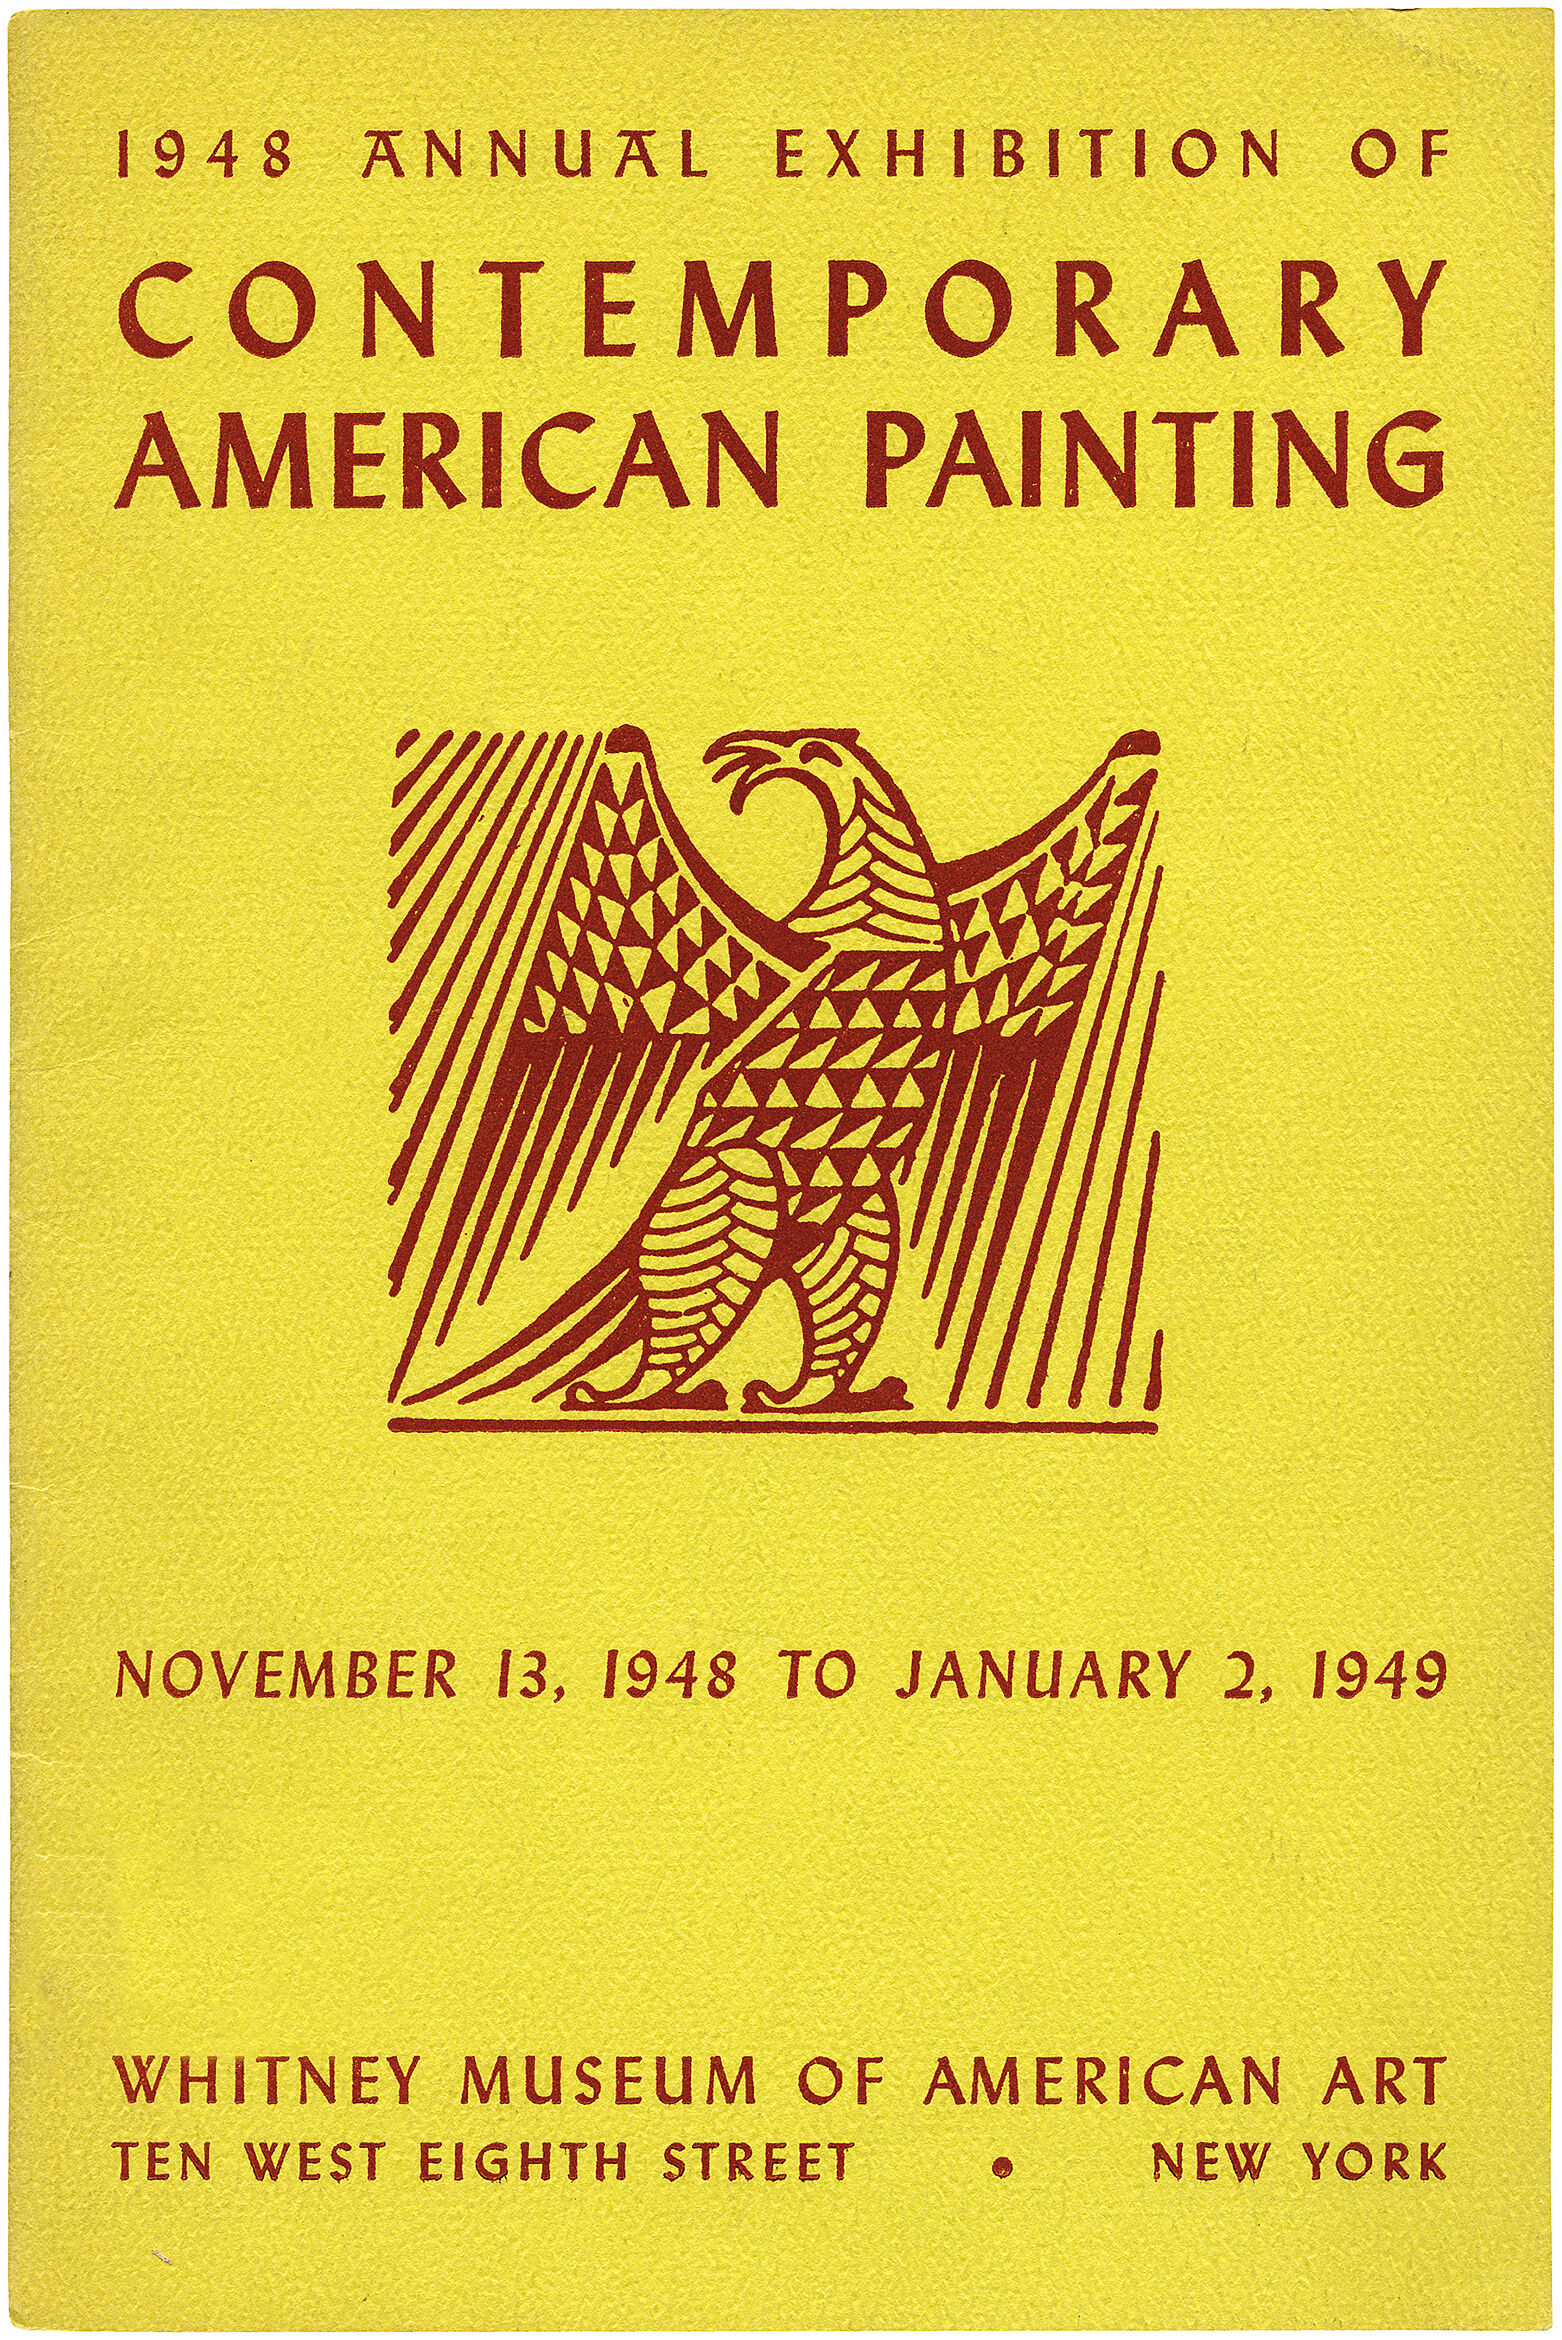 Cover for 1948 Annual Exhibition of Contemporary American Painting catalogue